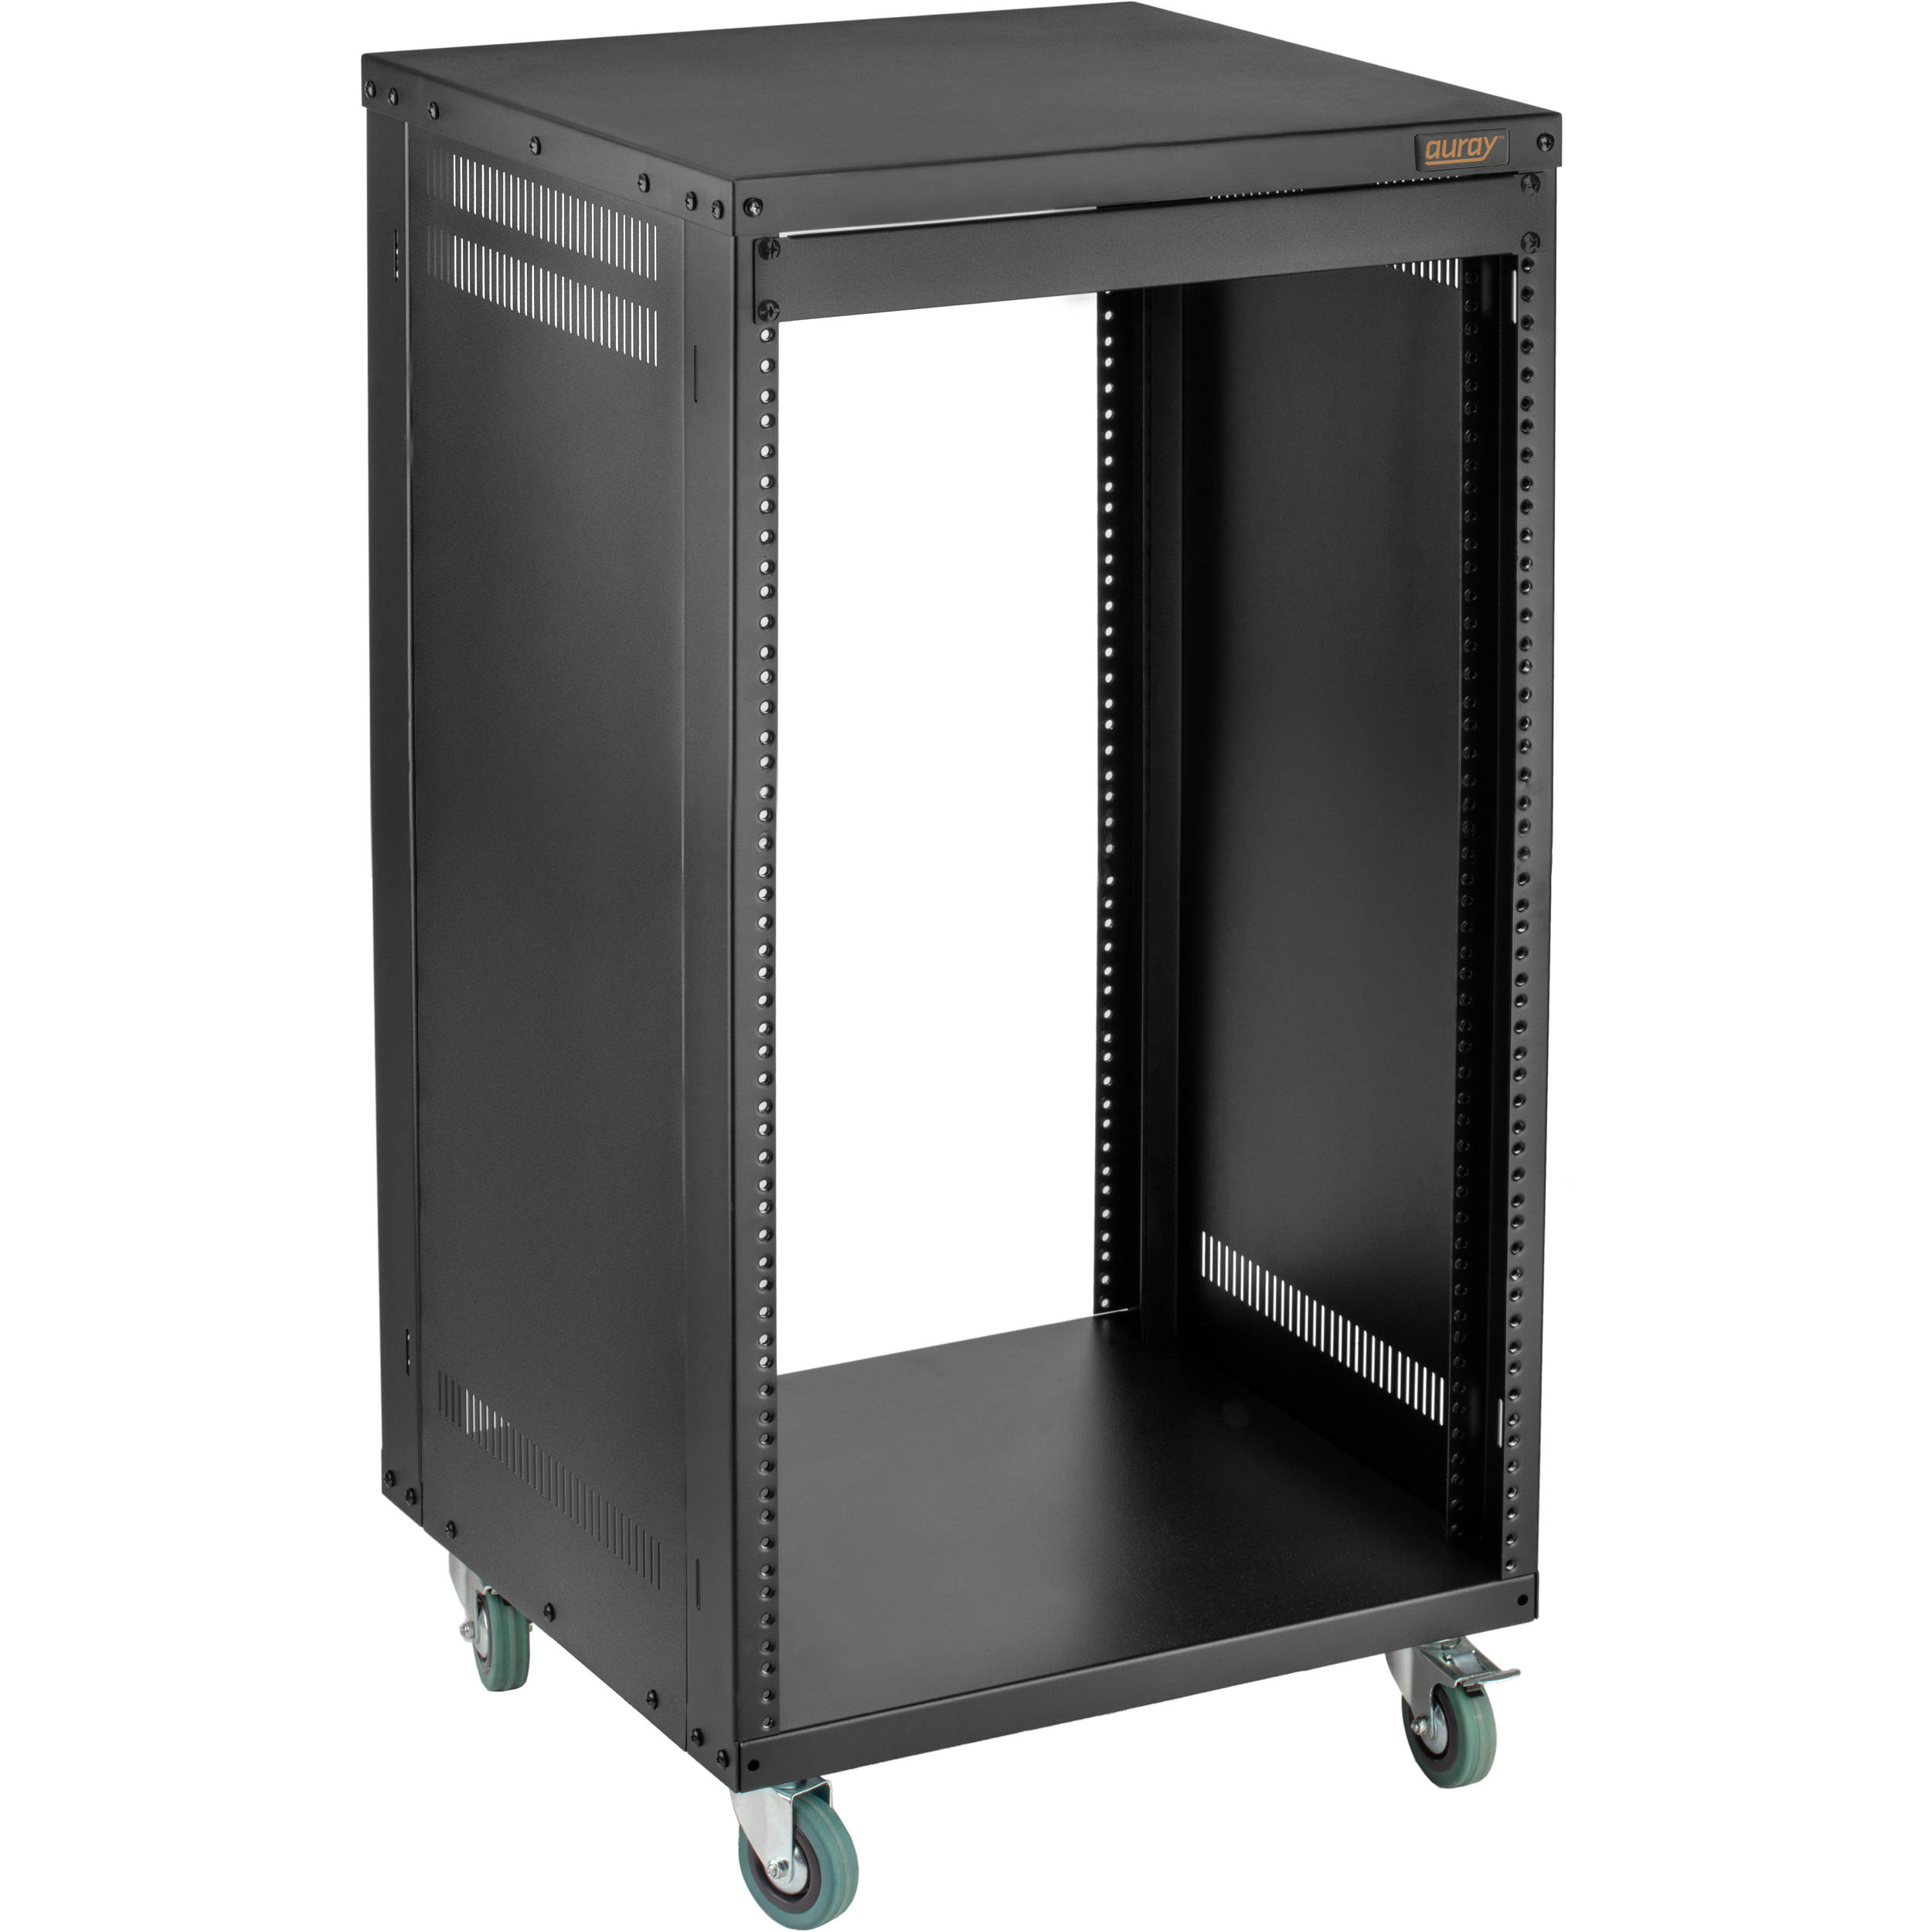 Rack Furniture | B&H Photo Video